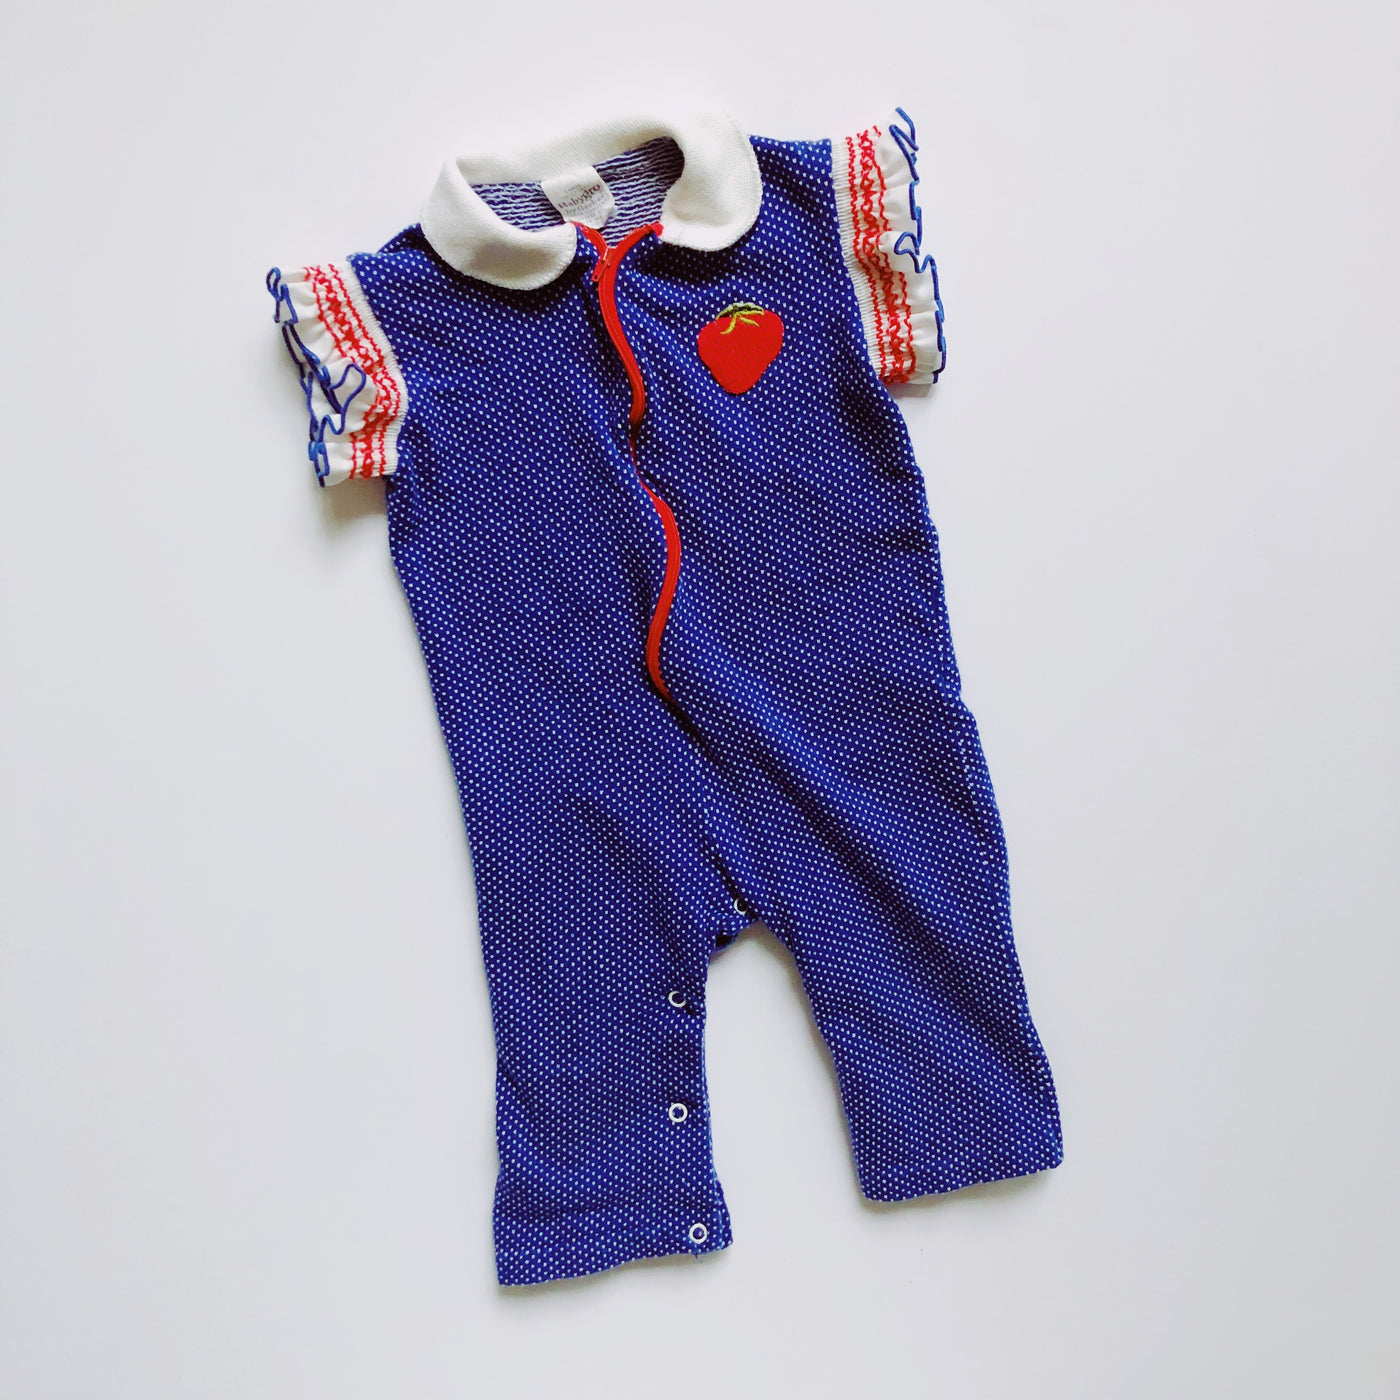 Vintage Babygro by Gerber Zip-Up Romper / Size 12M